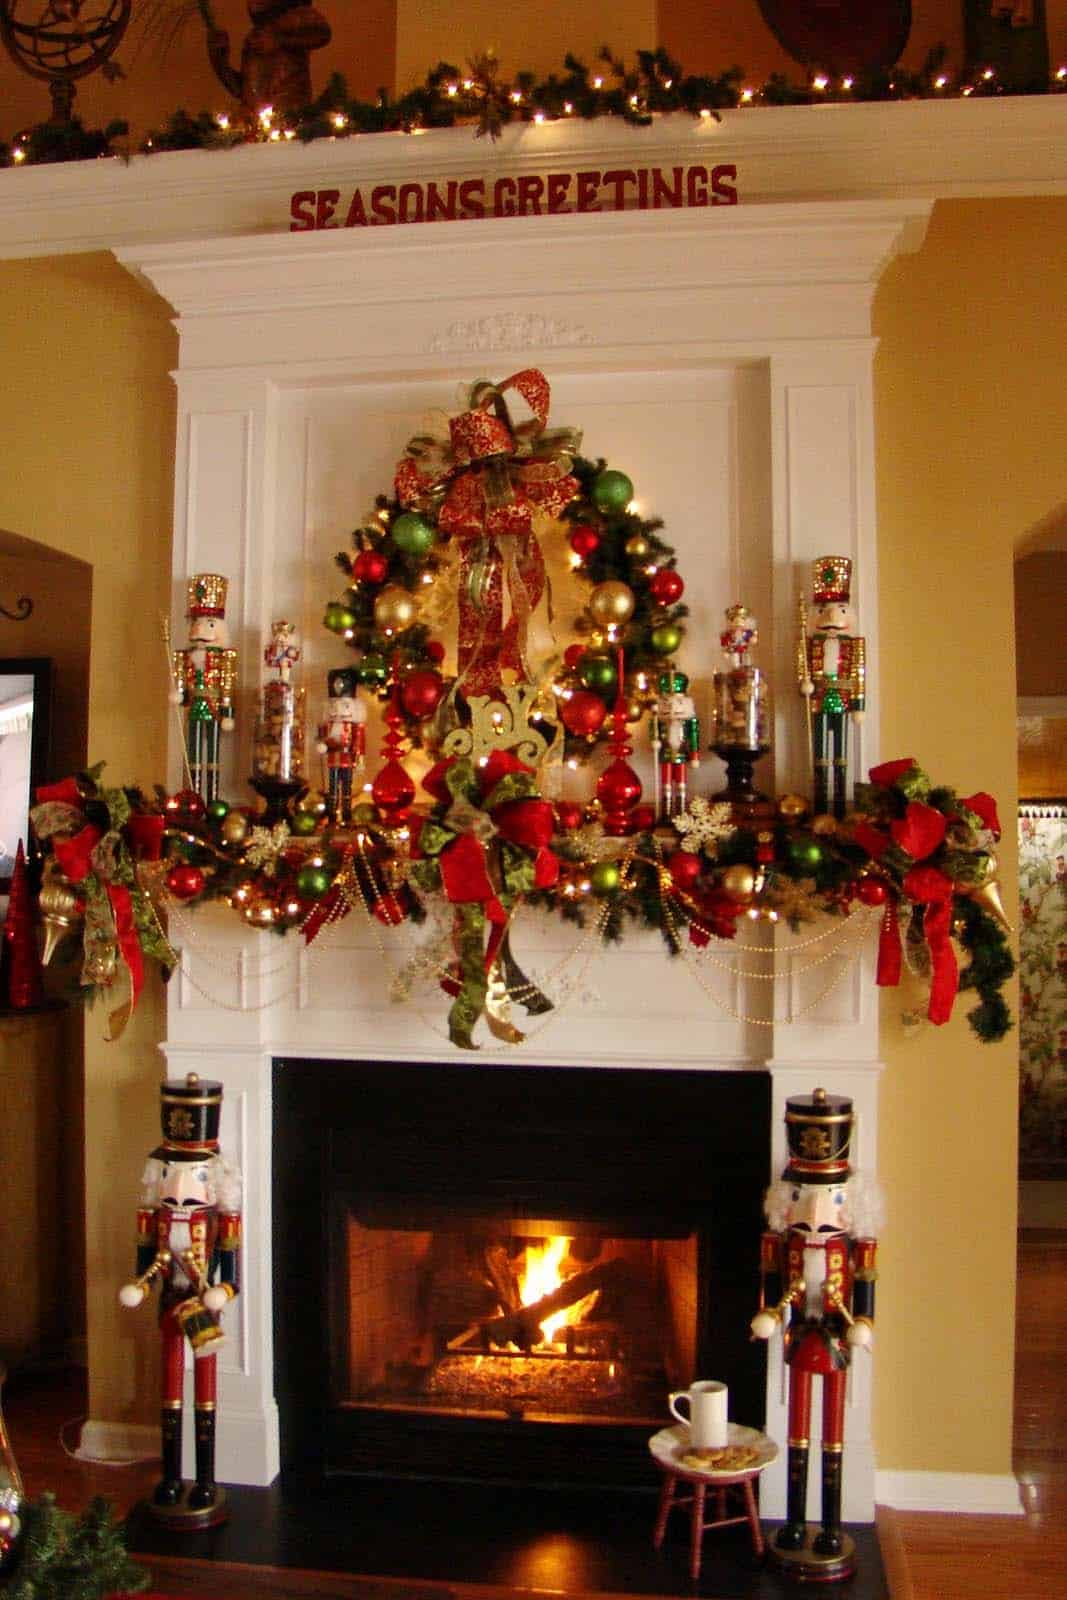 Christmas Mantel Decorating Ideas-48-1 Kindesign